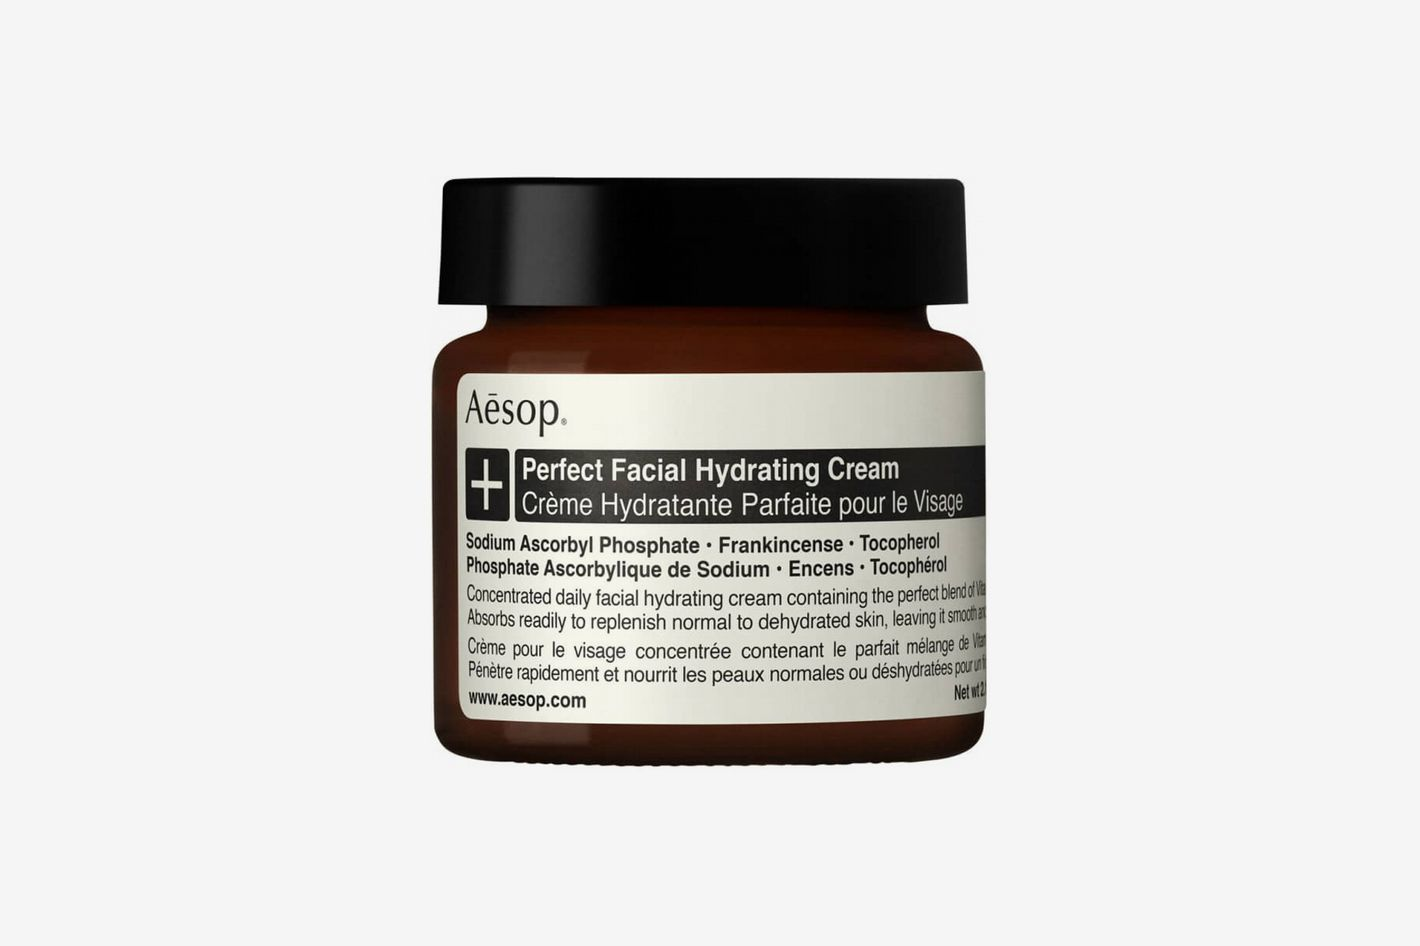 Aesop Perfect Facial Hydrating Cream